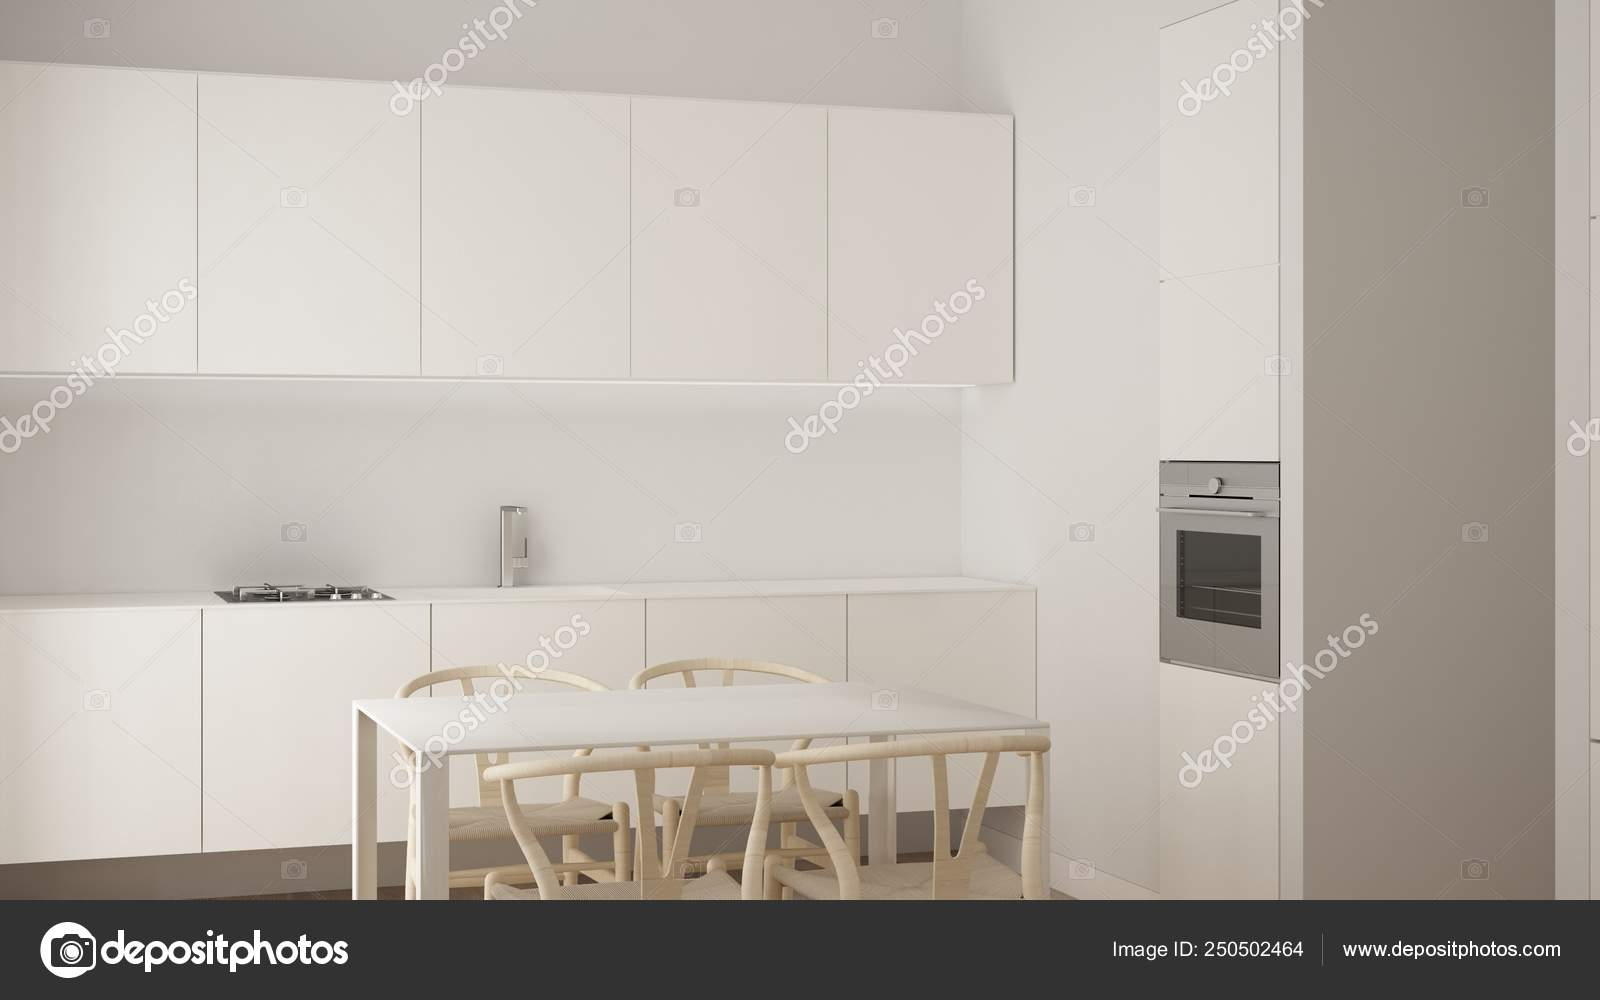 Minimalist White Small Kitchen Design In One Bedroom Apartment With Parquet Floor And Dining Table Interior Design Modern Contemporary Architecture Concept Idea Stock Photo C Archiviz 250502464